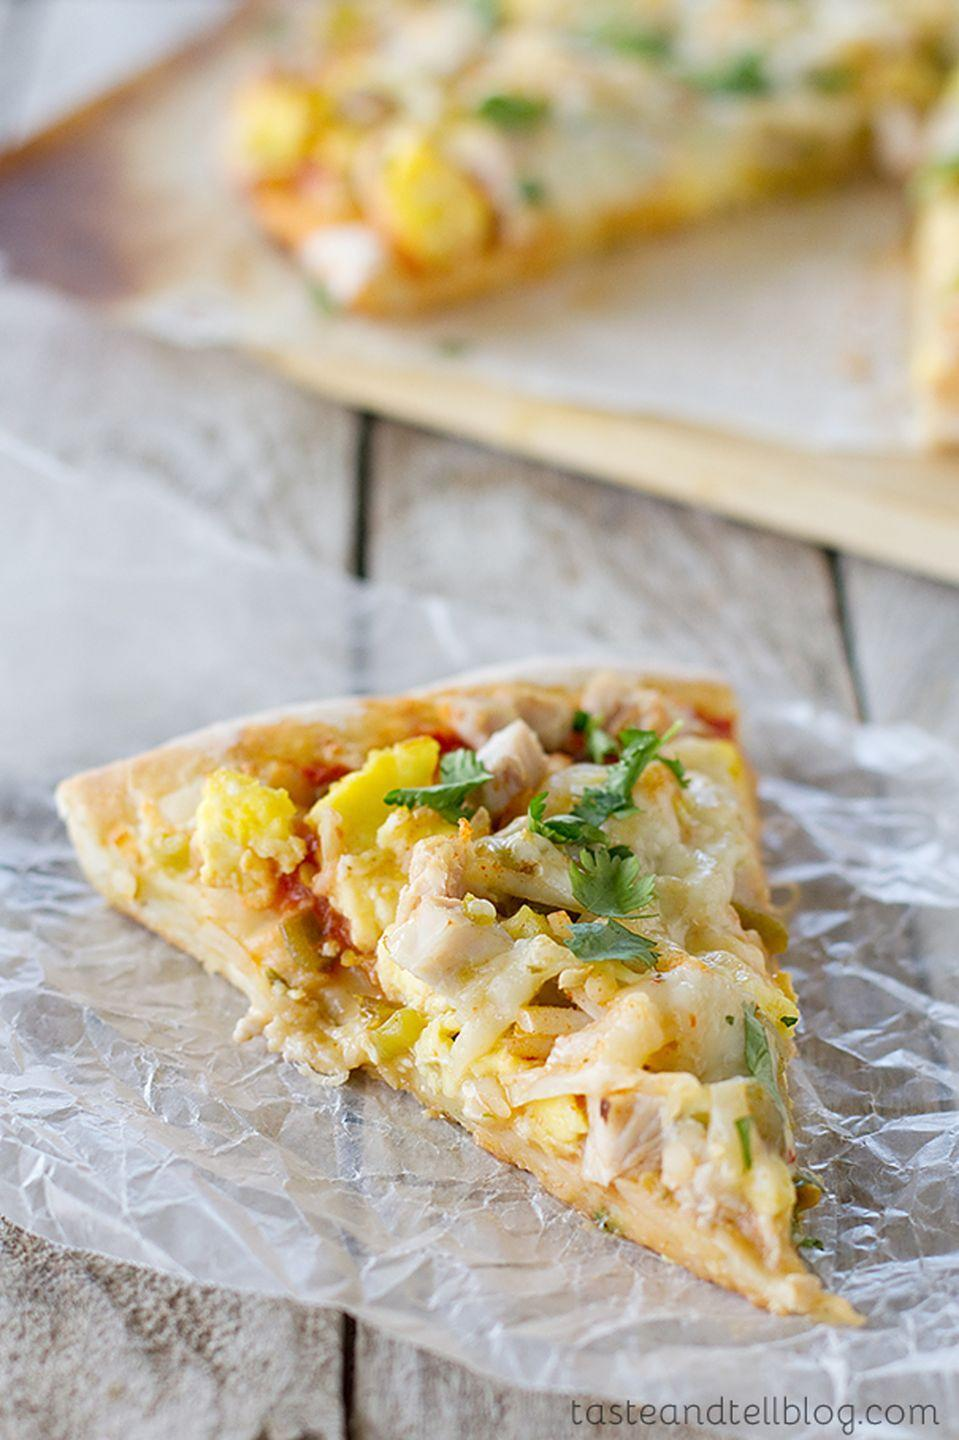 """<p>Green chiles, taco seasoning, and your favorite salsa are a delicious combo, but it's the extra turkey that turns out to be the star on this southwestern slice.</p><p><strong>Get the recipe at <a href=""""https://www.tasteandtellblog.com/mexican-turkey-breakfast-pizza/"""" rel=""""nofollow noopener"""" target=""""_blank"""" data-ylk=""""slk:Taste and Tell Blog"""" class=""""link rapid-noclick-resp"""">Taste and Tell Blog</a>.</strong></p><p><a class=""""link rapid-noclick-resp"""" href=""""https://www.amazon.com/Pizzacraft-Round-ThermaBond-Baking-Pizza/dp/B005IF2ZNM?tag=syn-yahoo-20&ascsubtag=%5Bartid%7C10050.g.2144%5Bsrc%7Cyahoo-us"""" rel=""""nofollow noopener"""" target=""""_blank"""" data-ylk=""""slk:shop pizza stones"""">shop pizza stones</a></p>"""